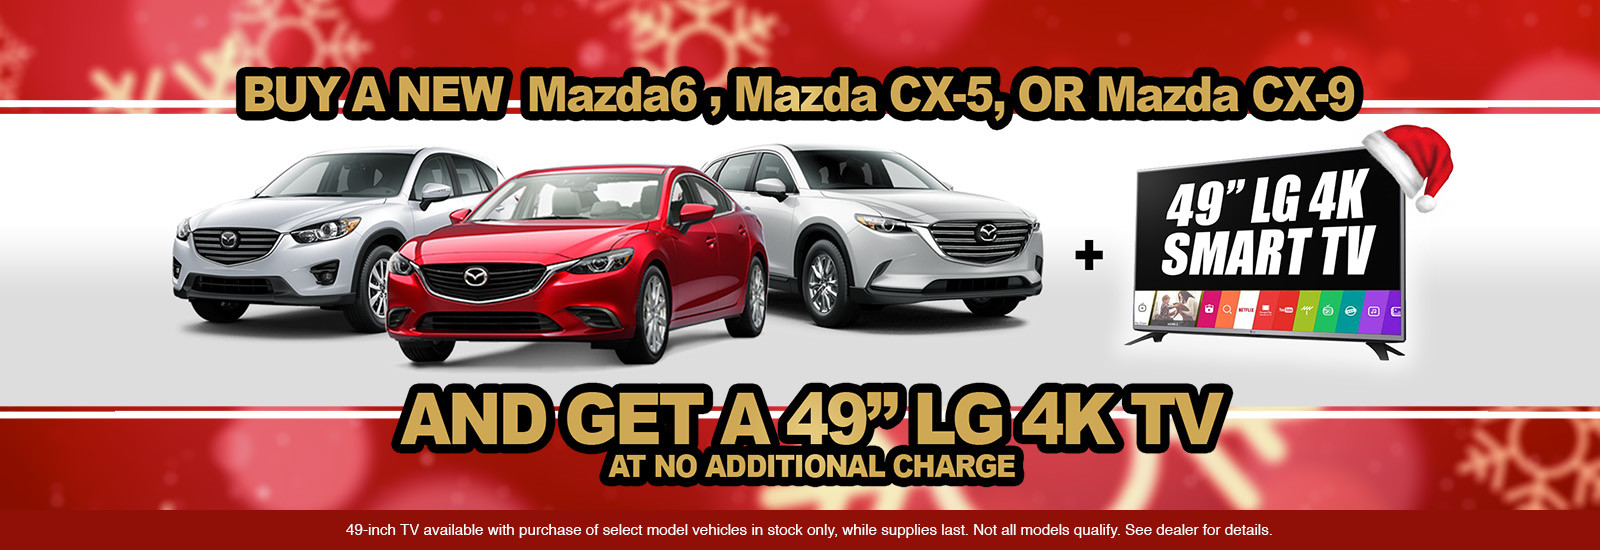 Holiday_Mazda_1600x550